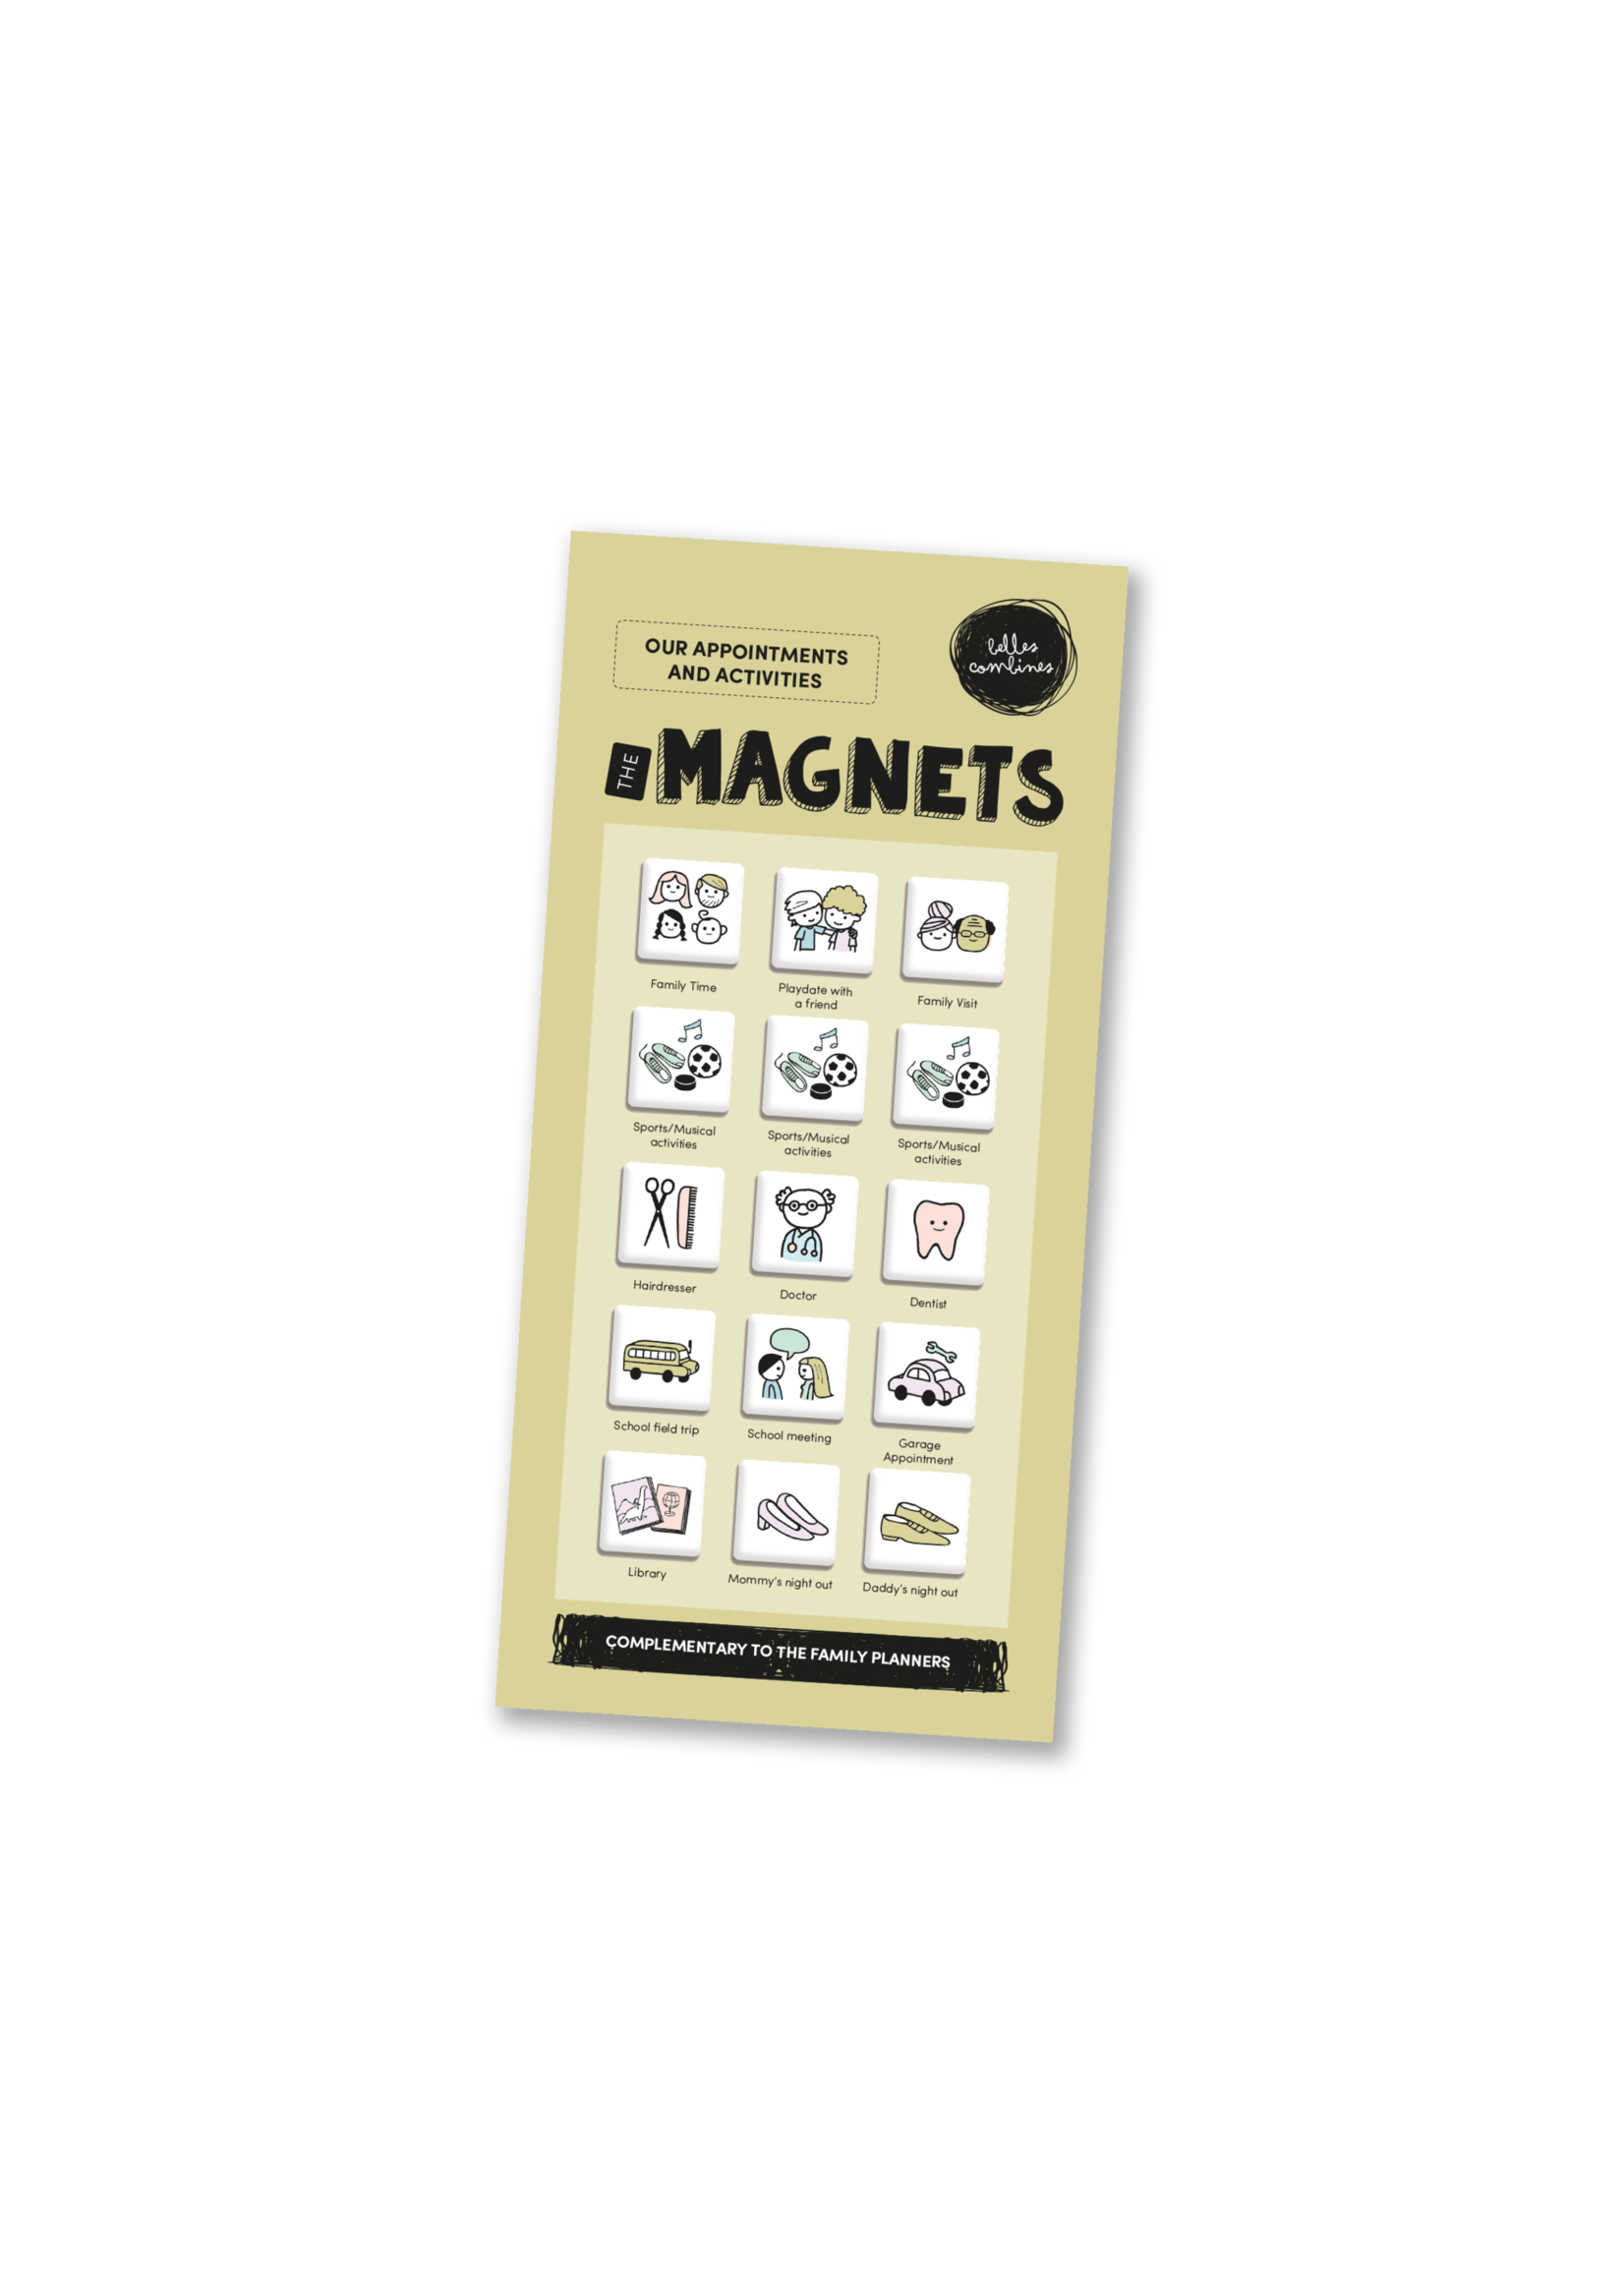 Les belles combines Magnets -Appointments and activities